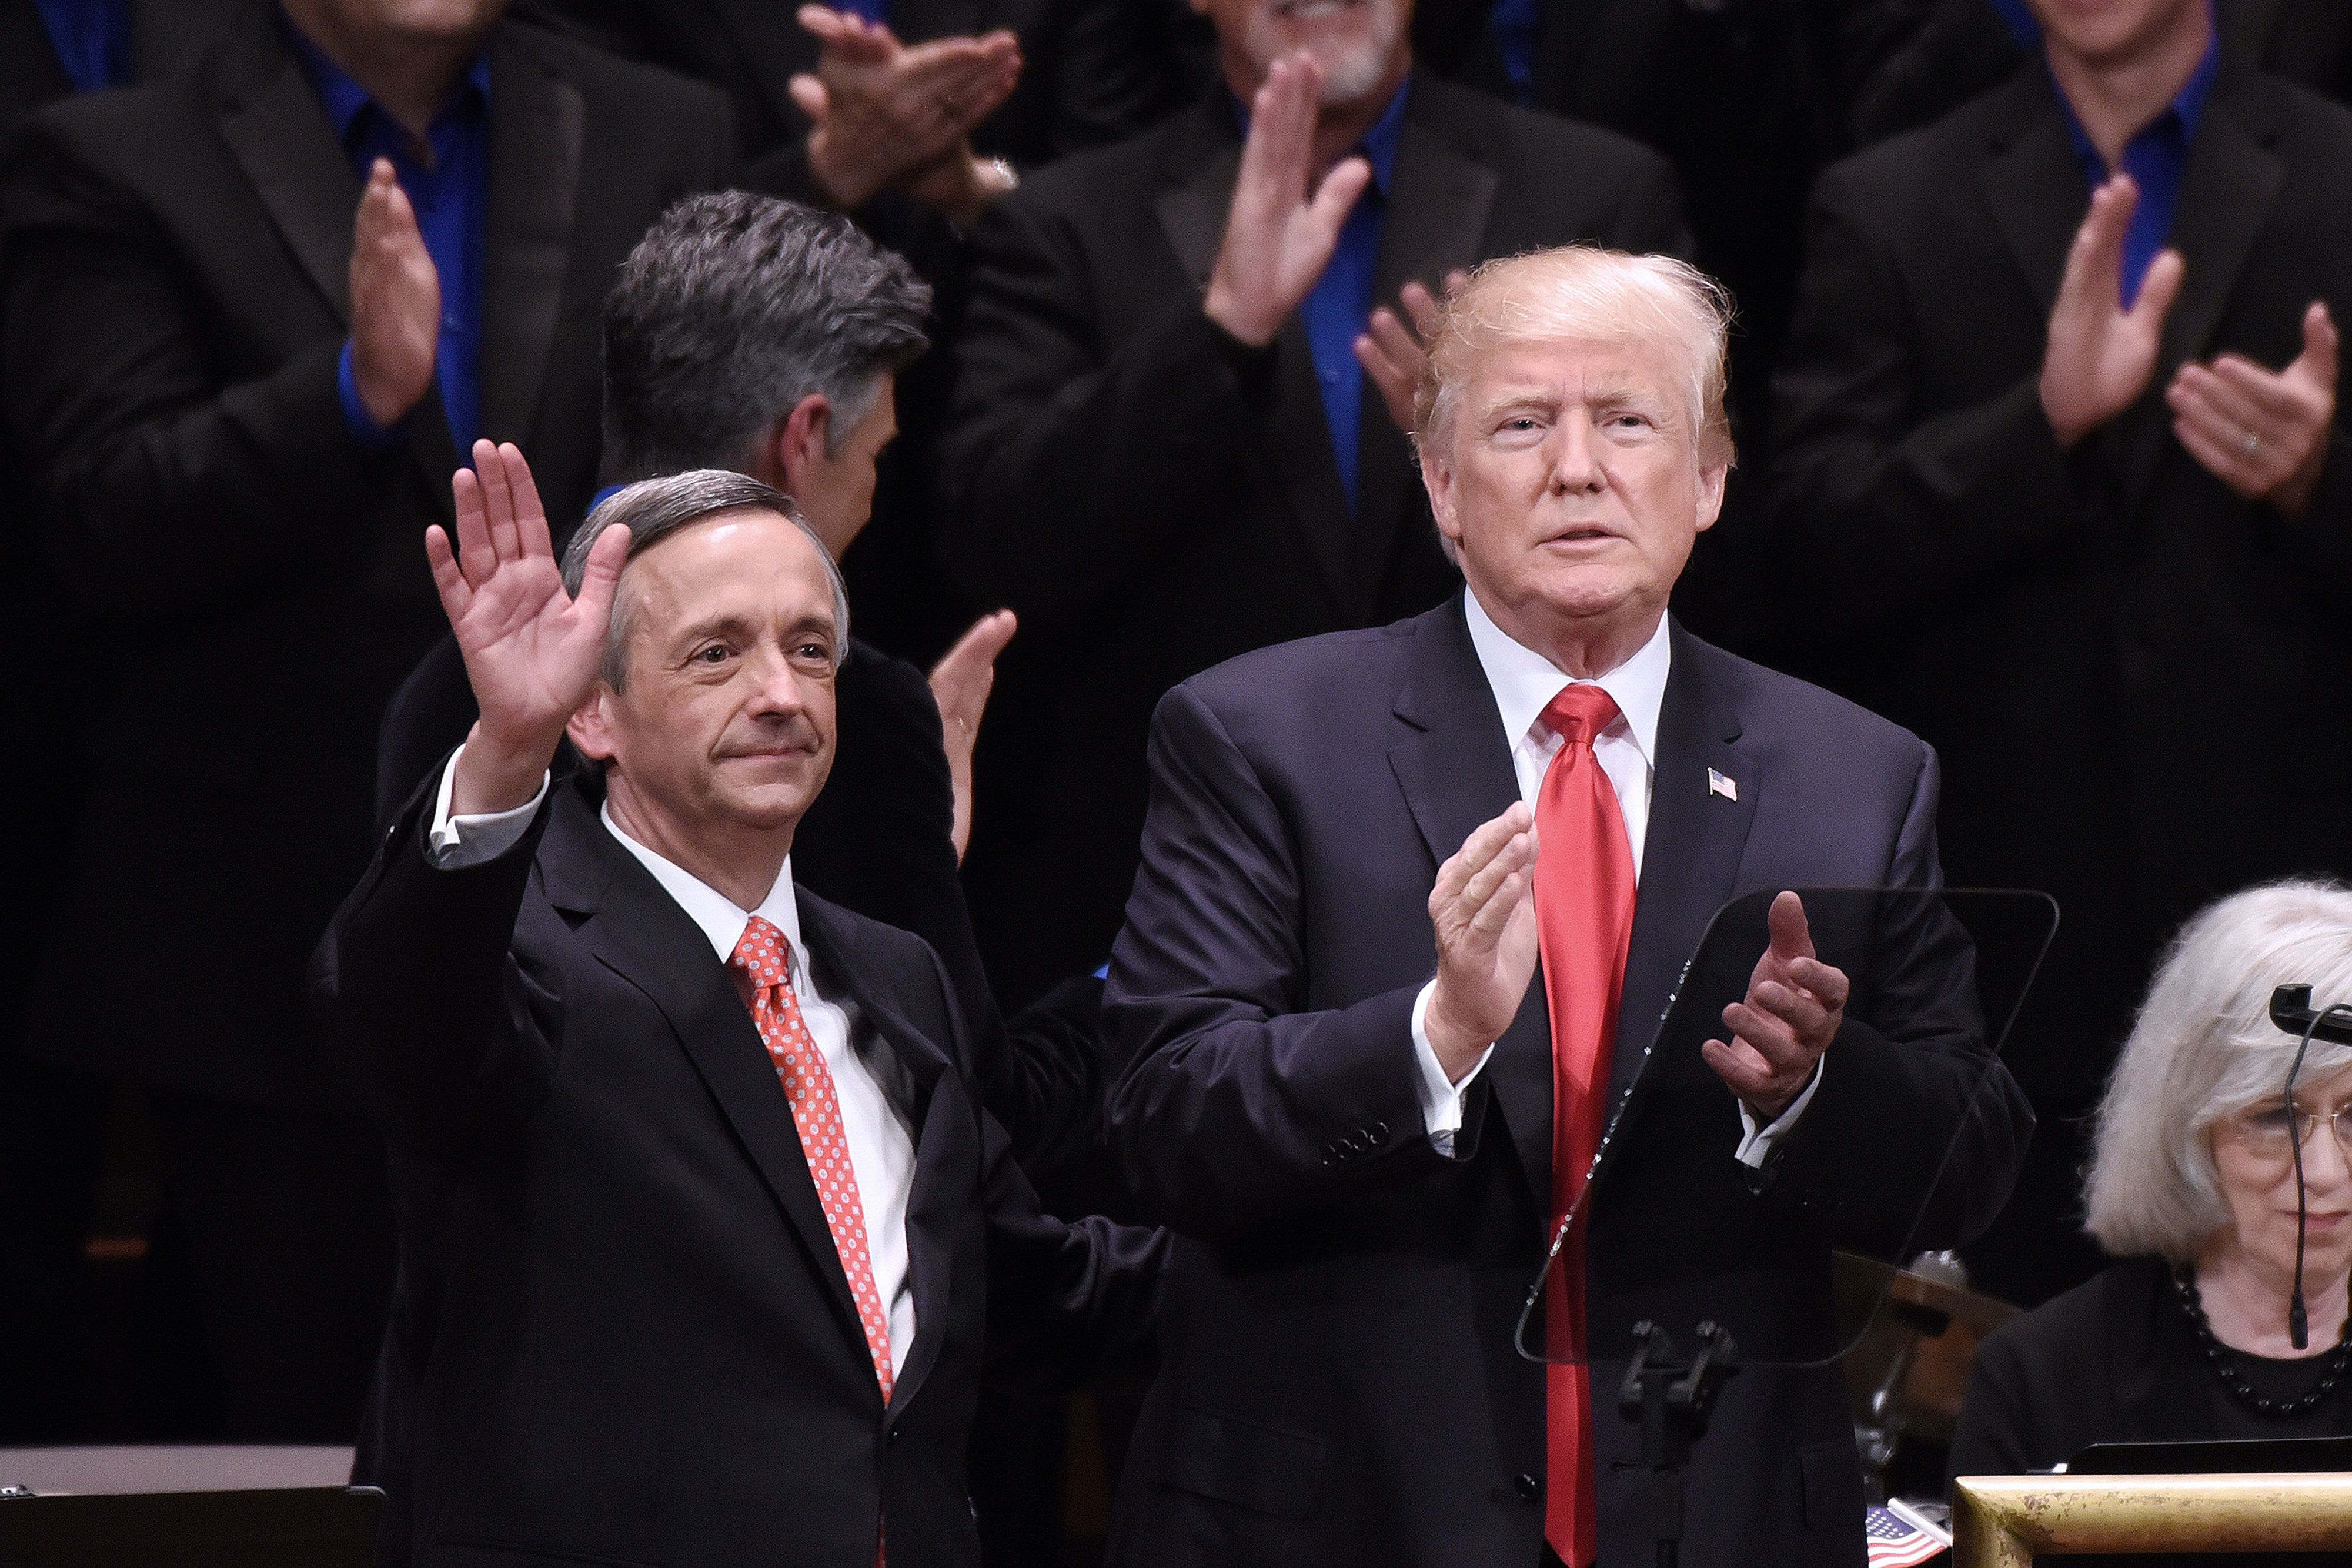 U.S. President Donald Trump, right, applauds as pastor Robert Jeffress waves during the 'Celebrate Freedom' event at the John F. Kennedy Center for the Performing Arts in Washington, D.C., U.S., on Saturday, July 1, 2017. Trump returned to the relatively calm waters of patriotism and supporting American troops in a speech on Saturday night that followed several outbursts against the media and others on social media earlier in the day. Photographer: Olivier Douliery/Bloomberg via Getty Images